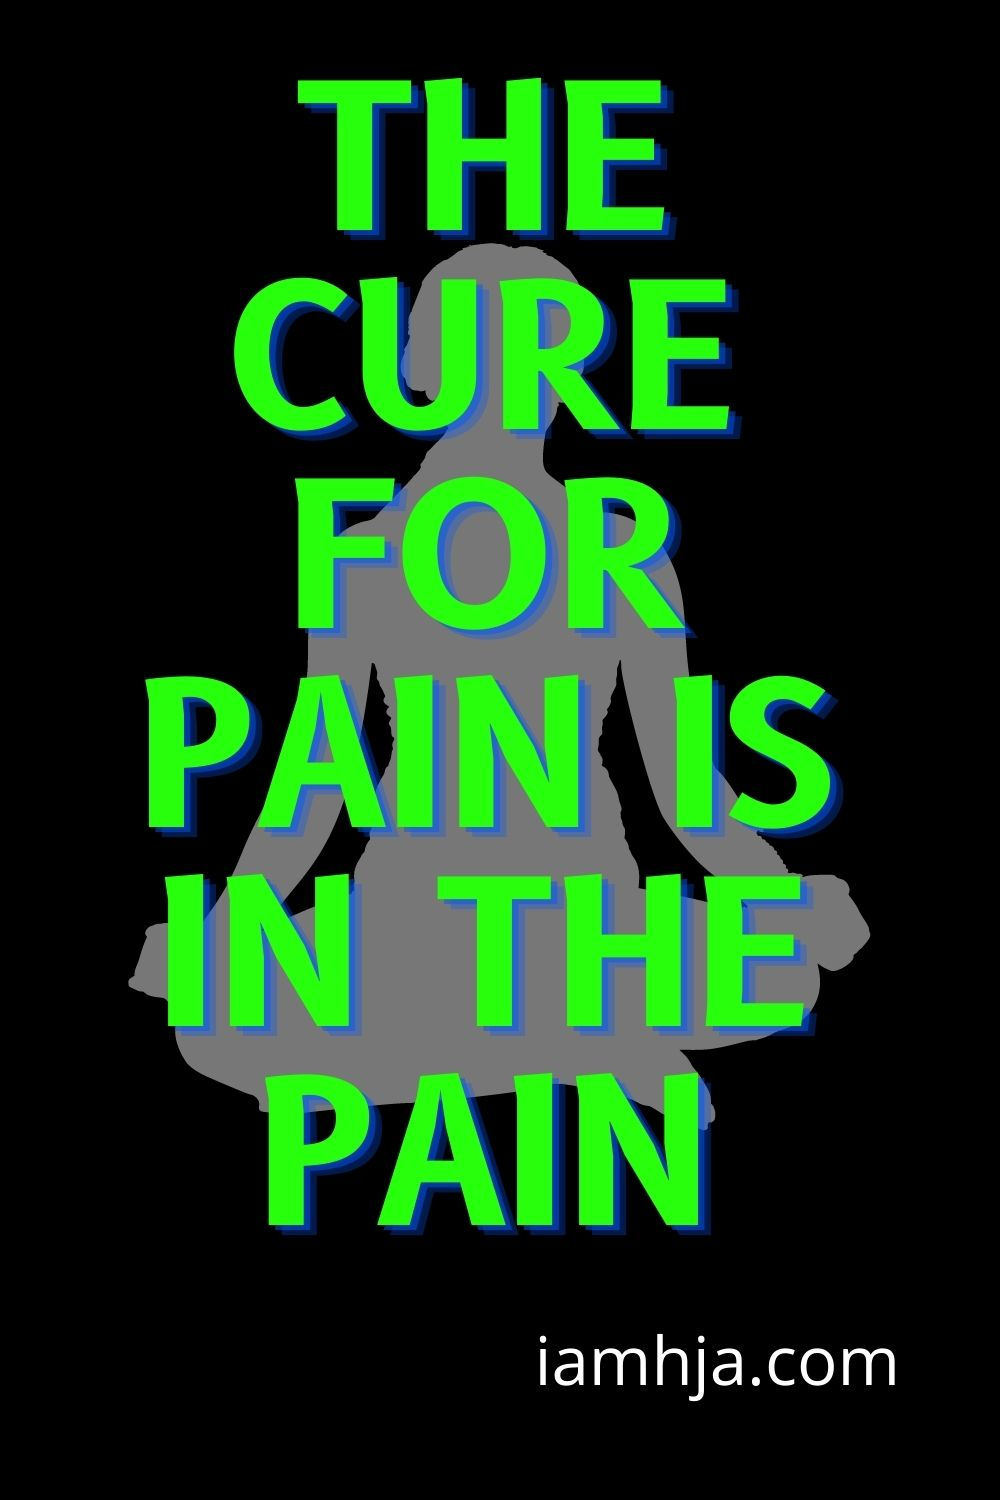 Spiritual Quotes: The cure for pain is in the pain